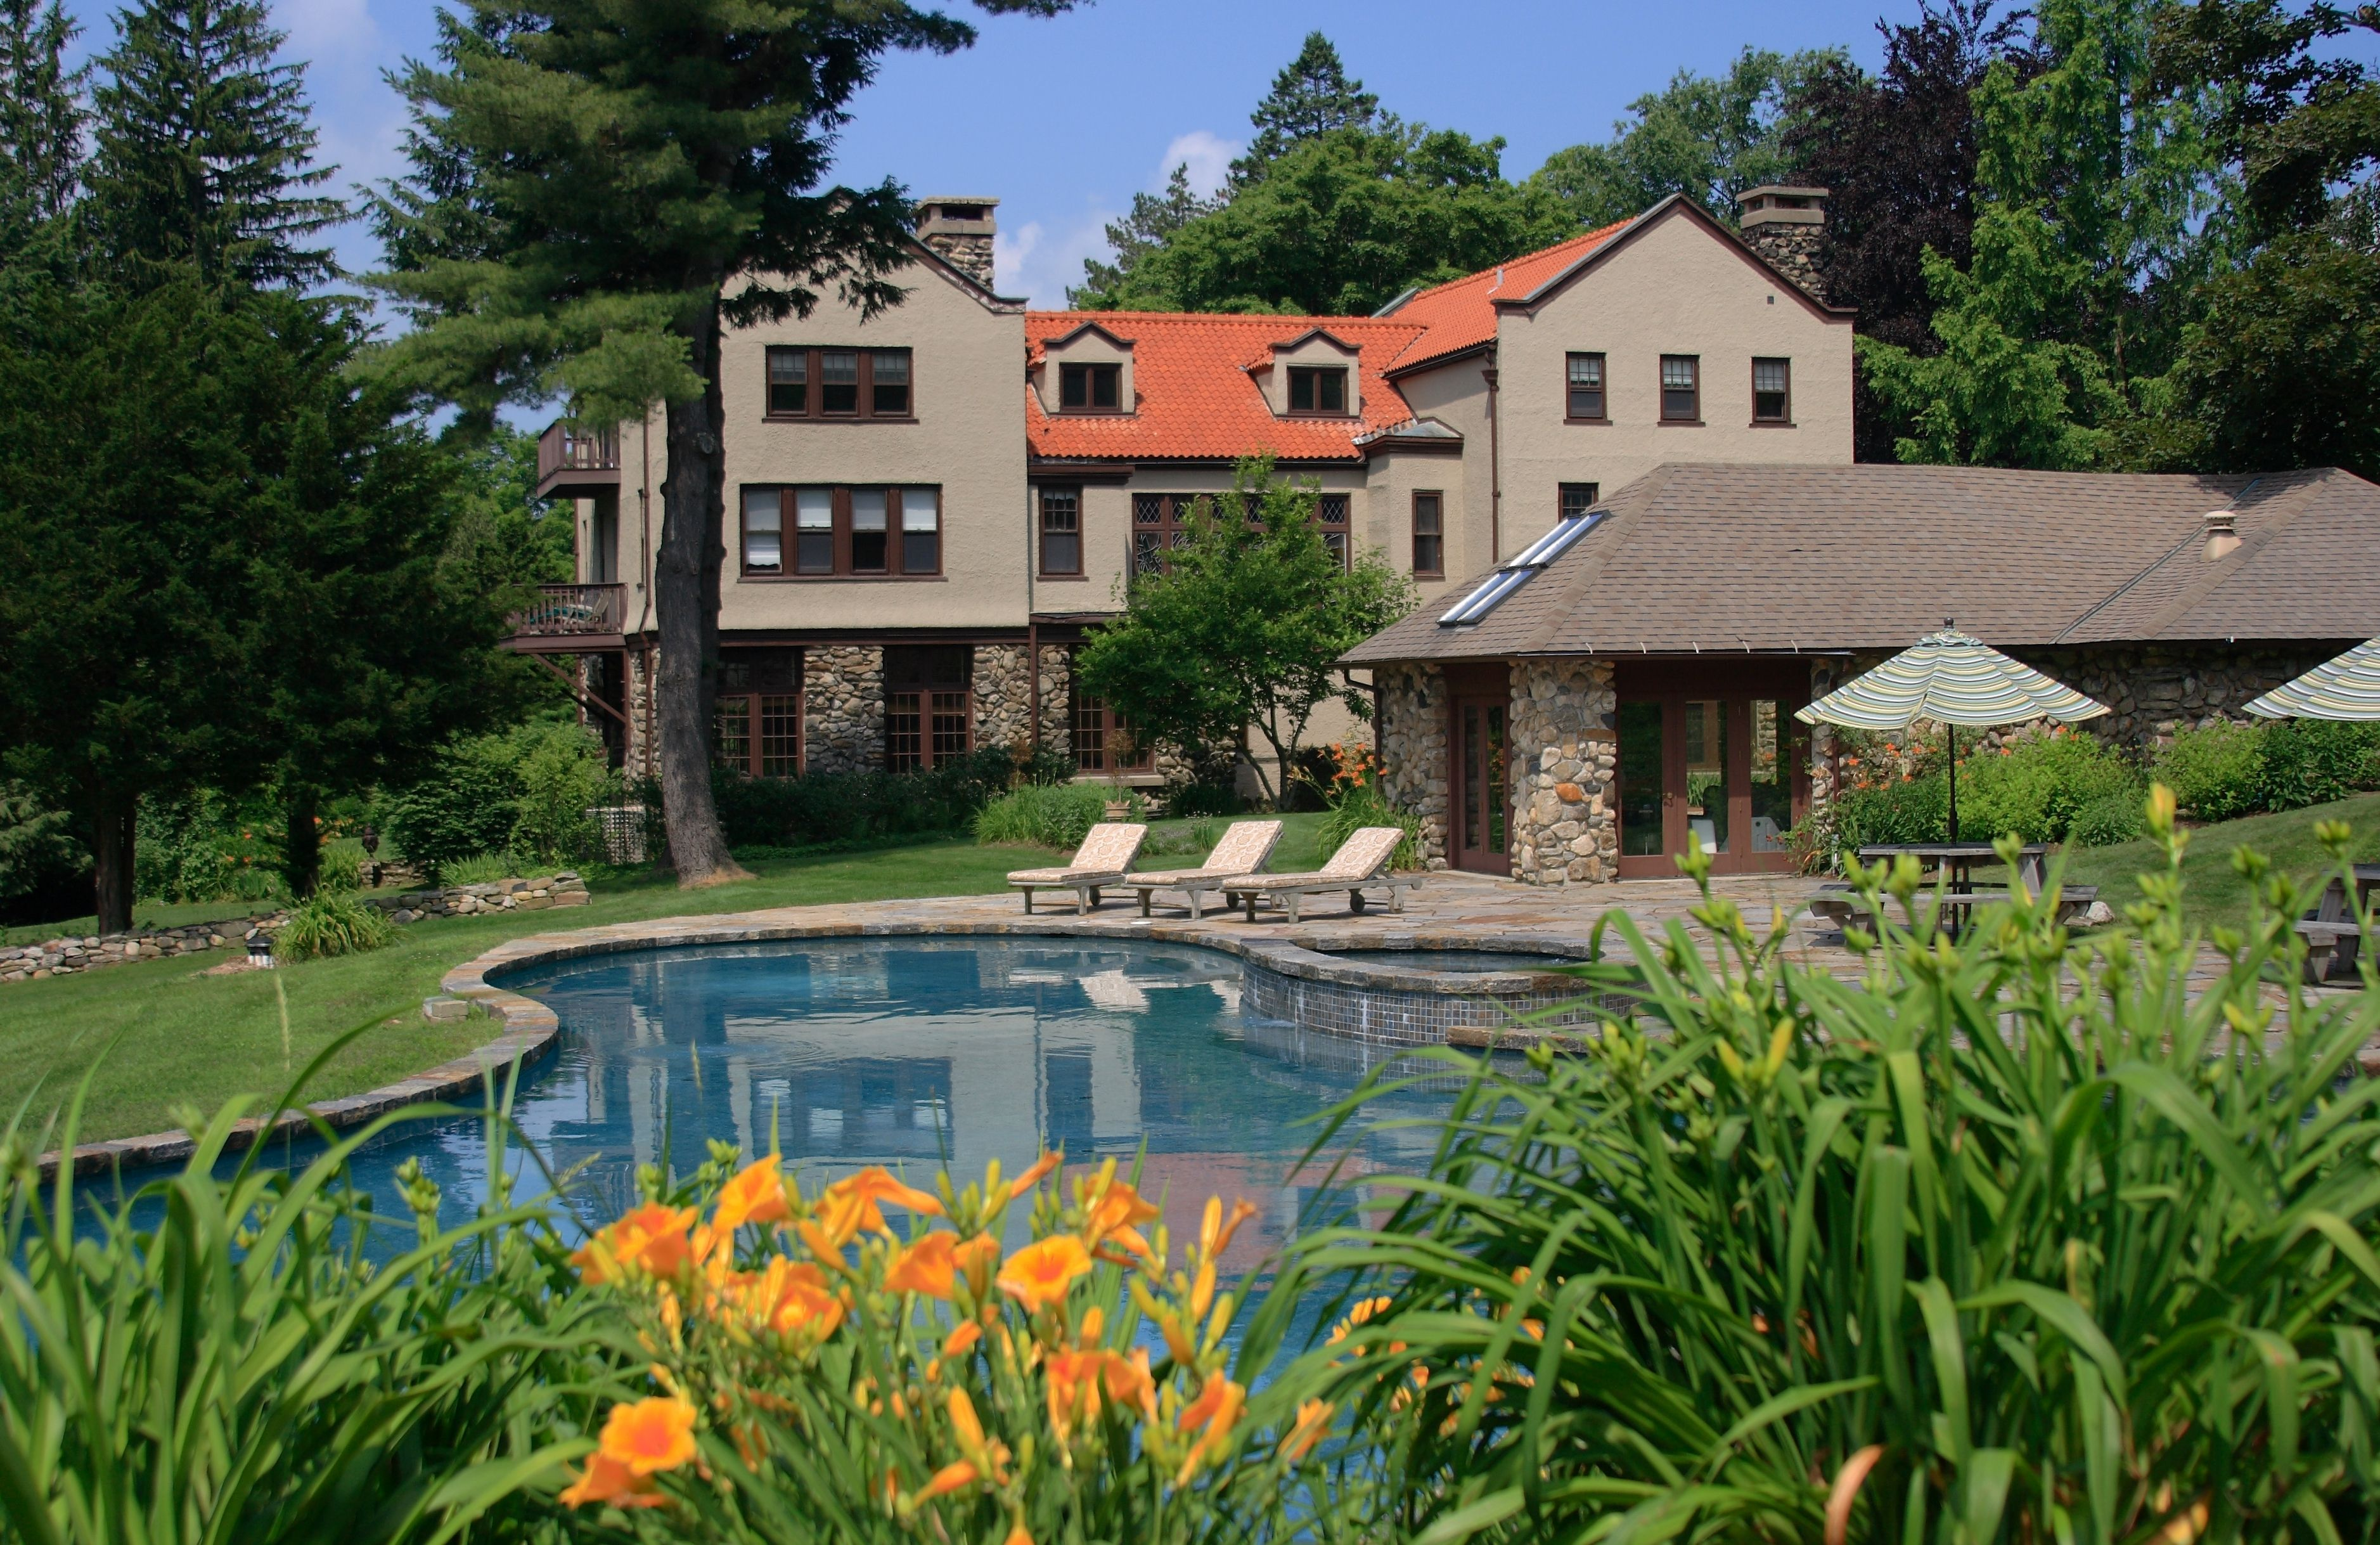 Rock Hall Luxe Lodging 19 Rock Hall Rd., Colebrook, CT